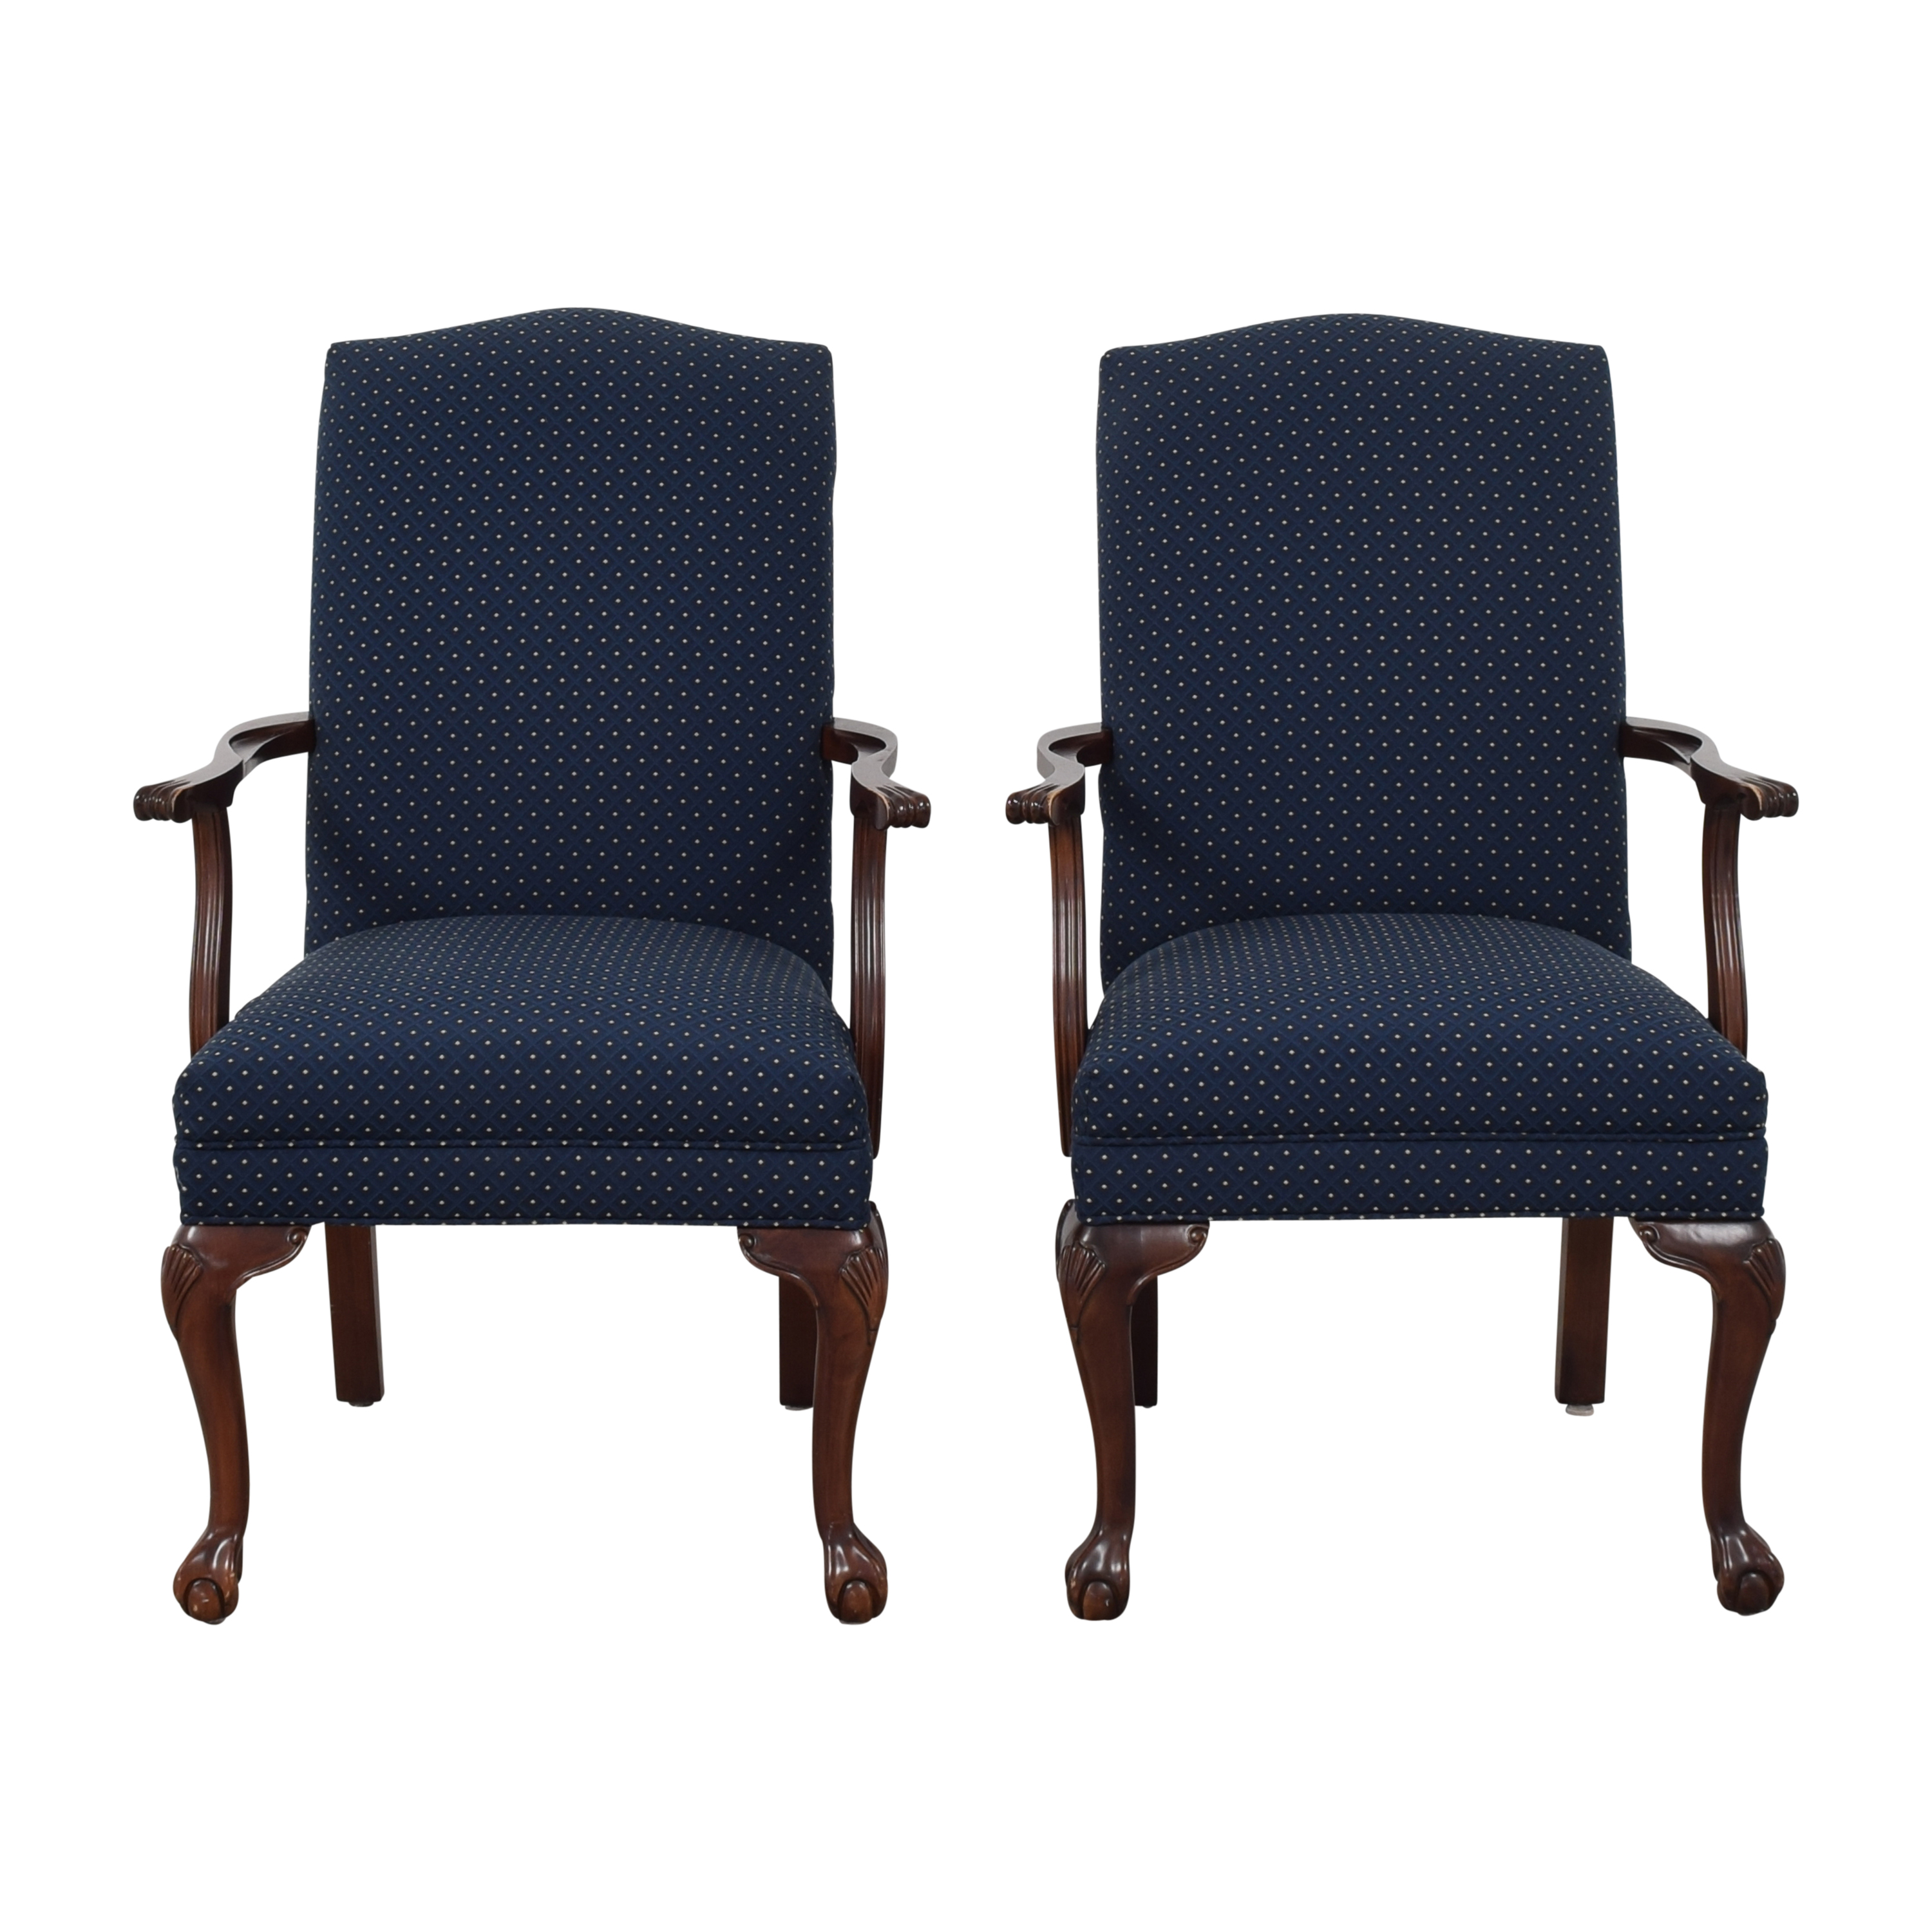 Ethan Allen Ethan Allen Chippendale Dining Arm Chairs coupon